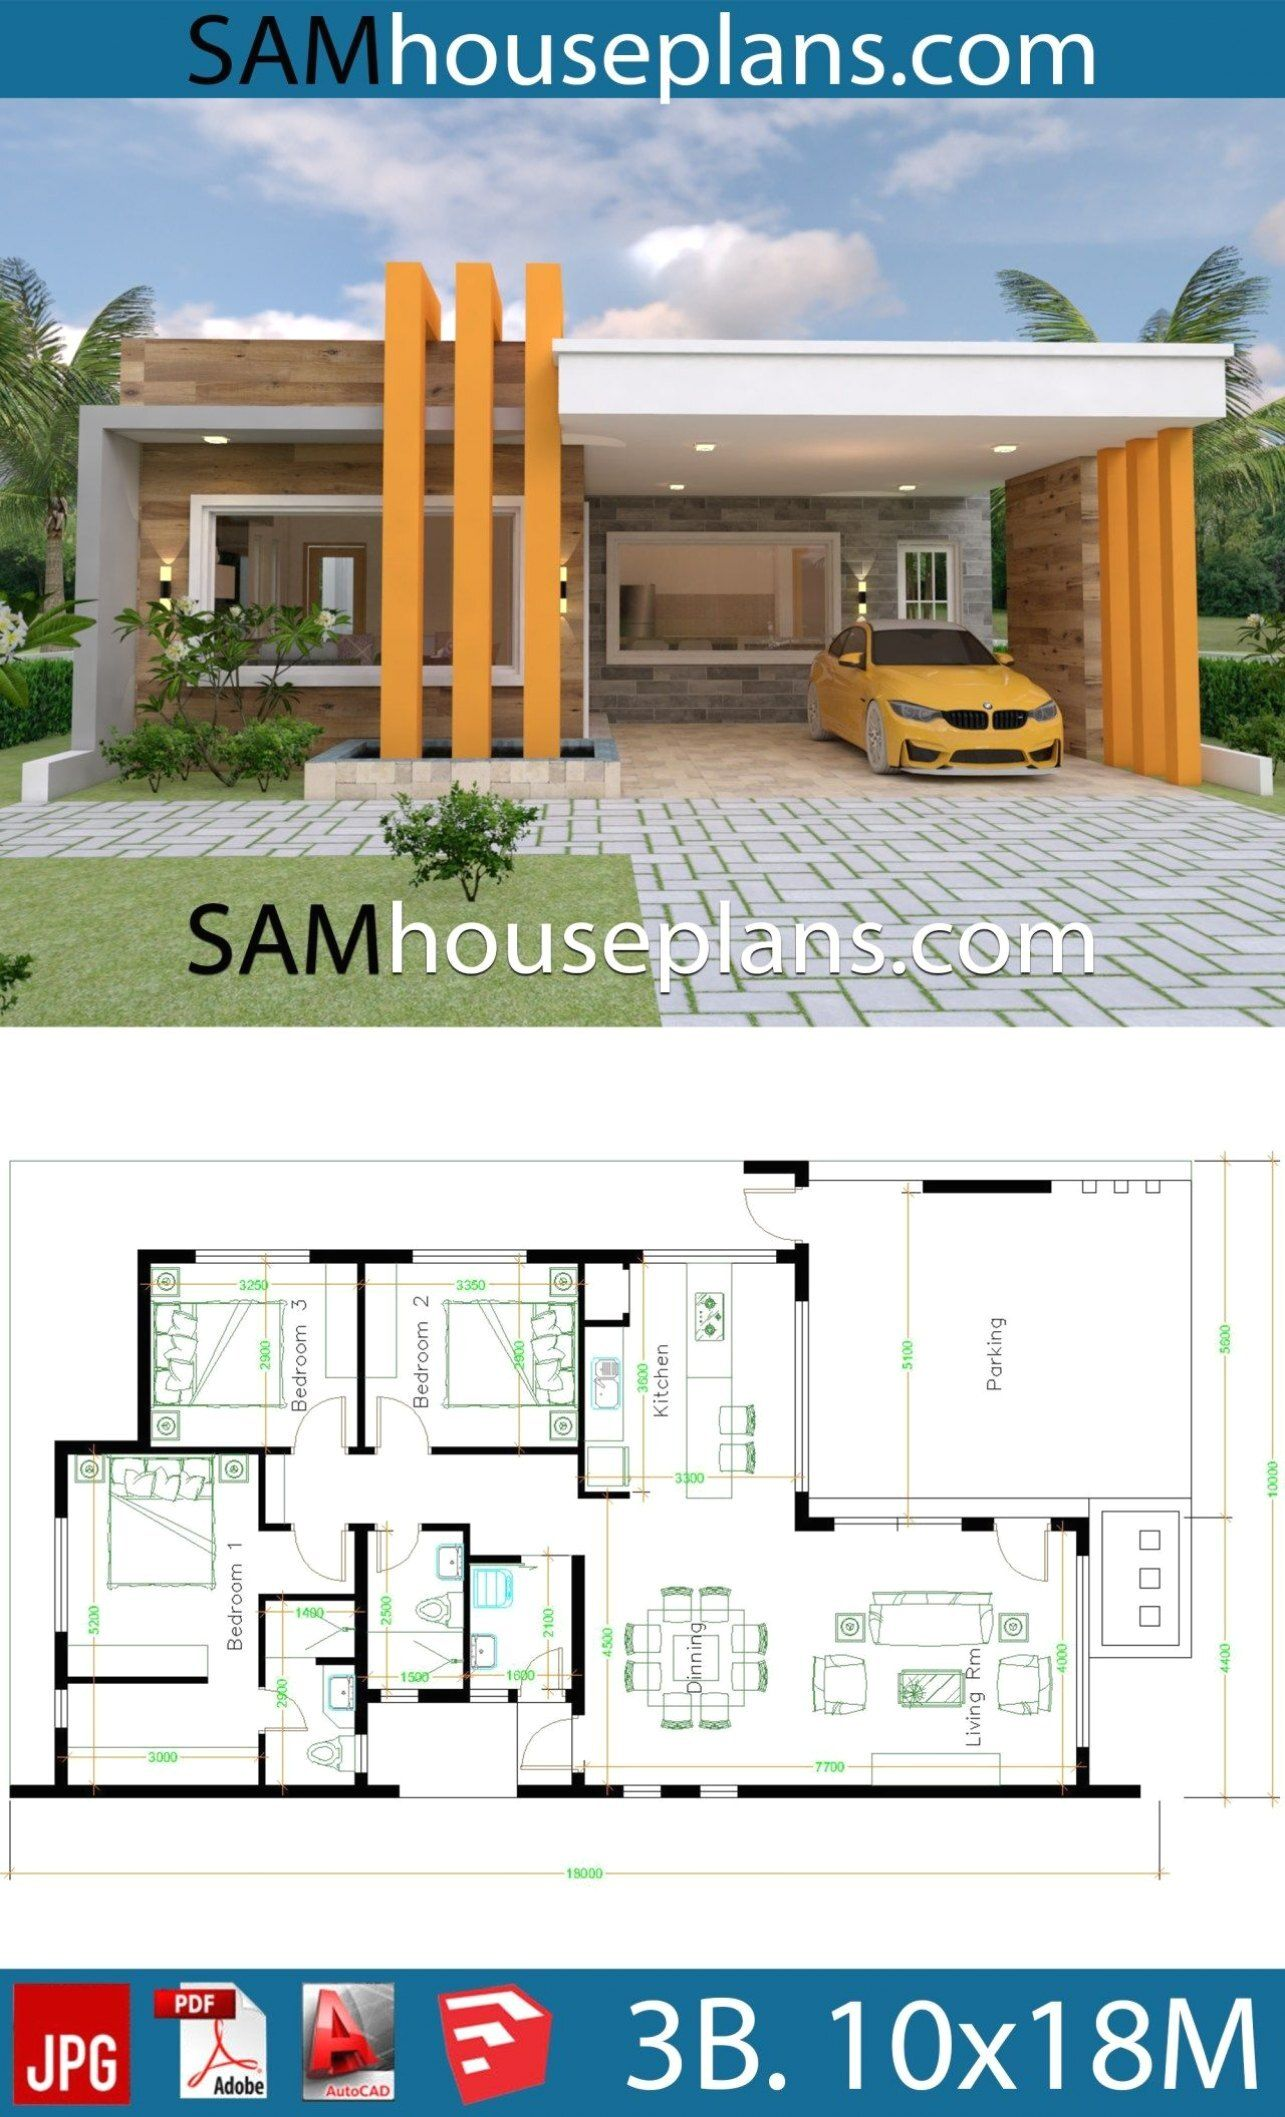 House plans x with 3 bedrooms full plans - sam house plans ...